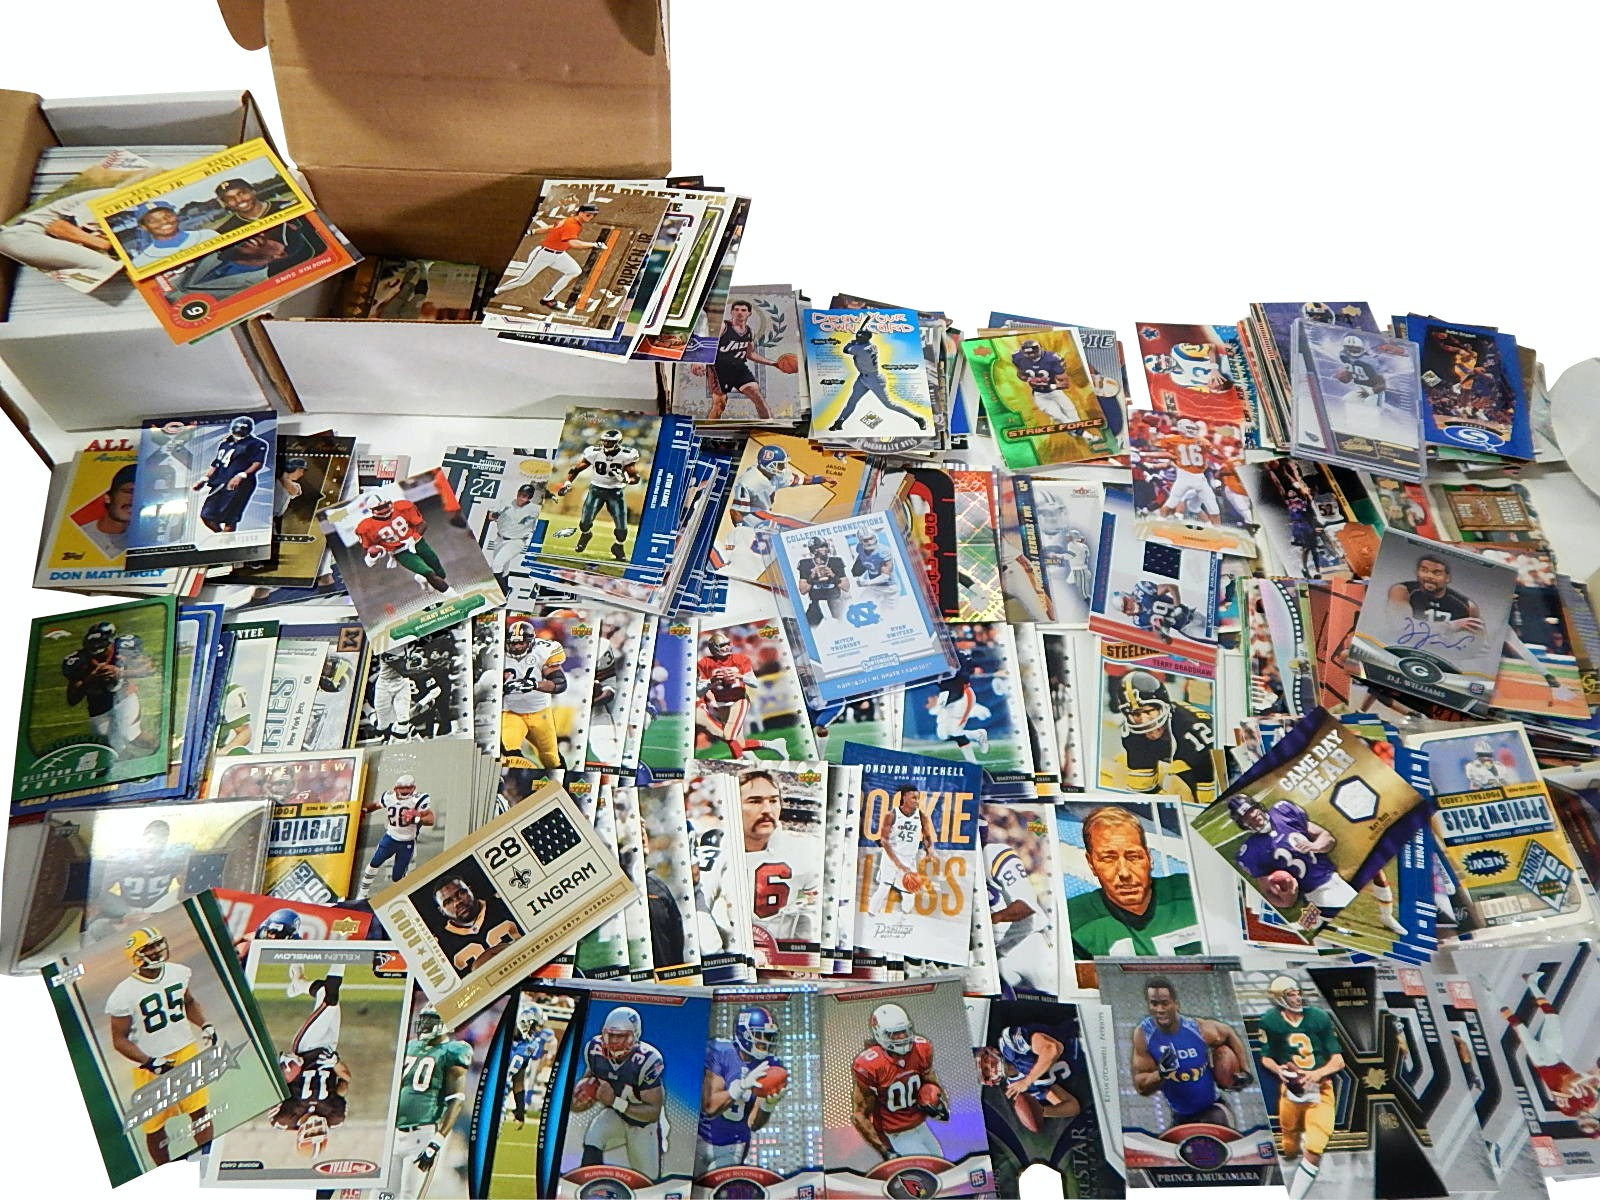 Large Collection of Baseball,Basketball,Football Star and Rookie Cards - 1000 Ct